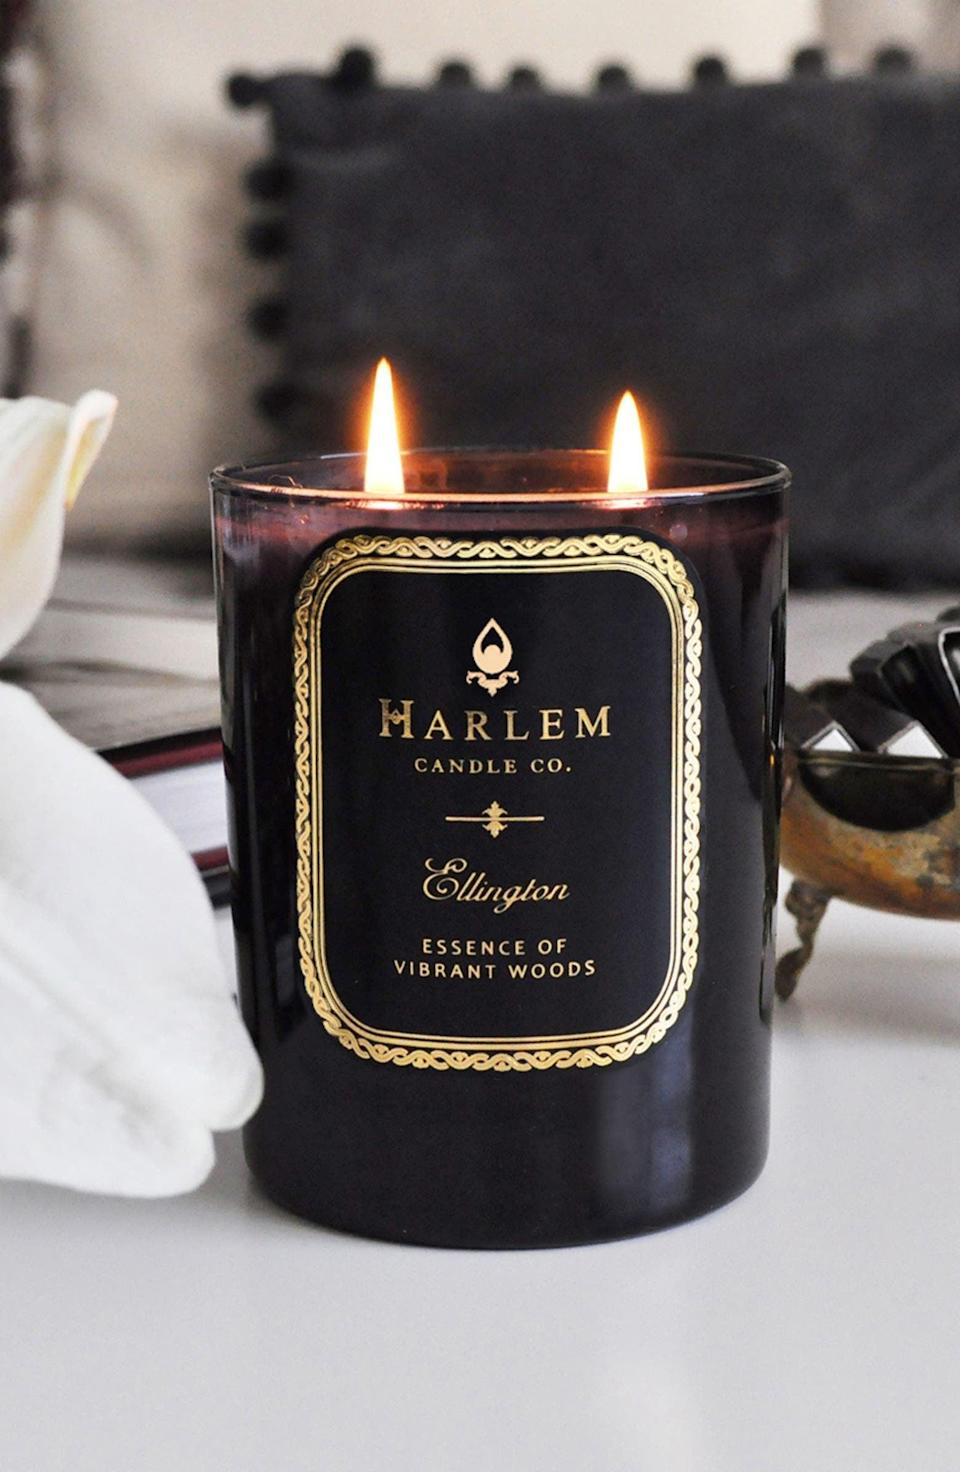 <p>We can't get enough candles during fall, and the <span>Harlem Candle Company Renaissance Ellington Luxury Candle</span> ($45) is next up on our wish list. It's the perfect choice if you like cozy, cinnamon-inspired scents.</p>